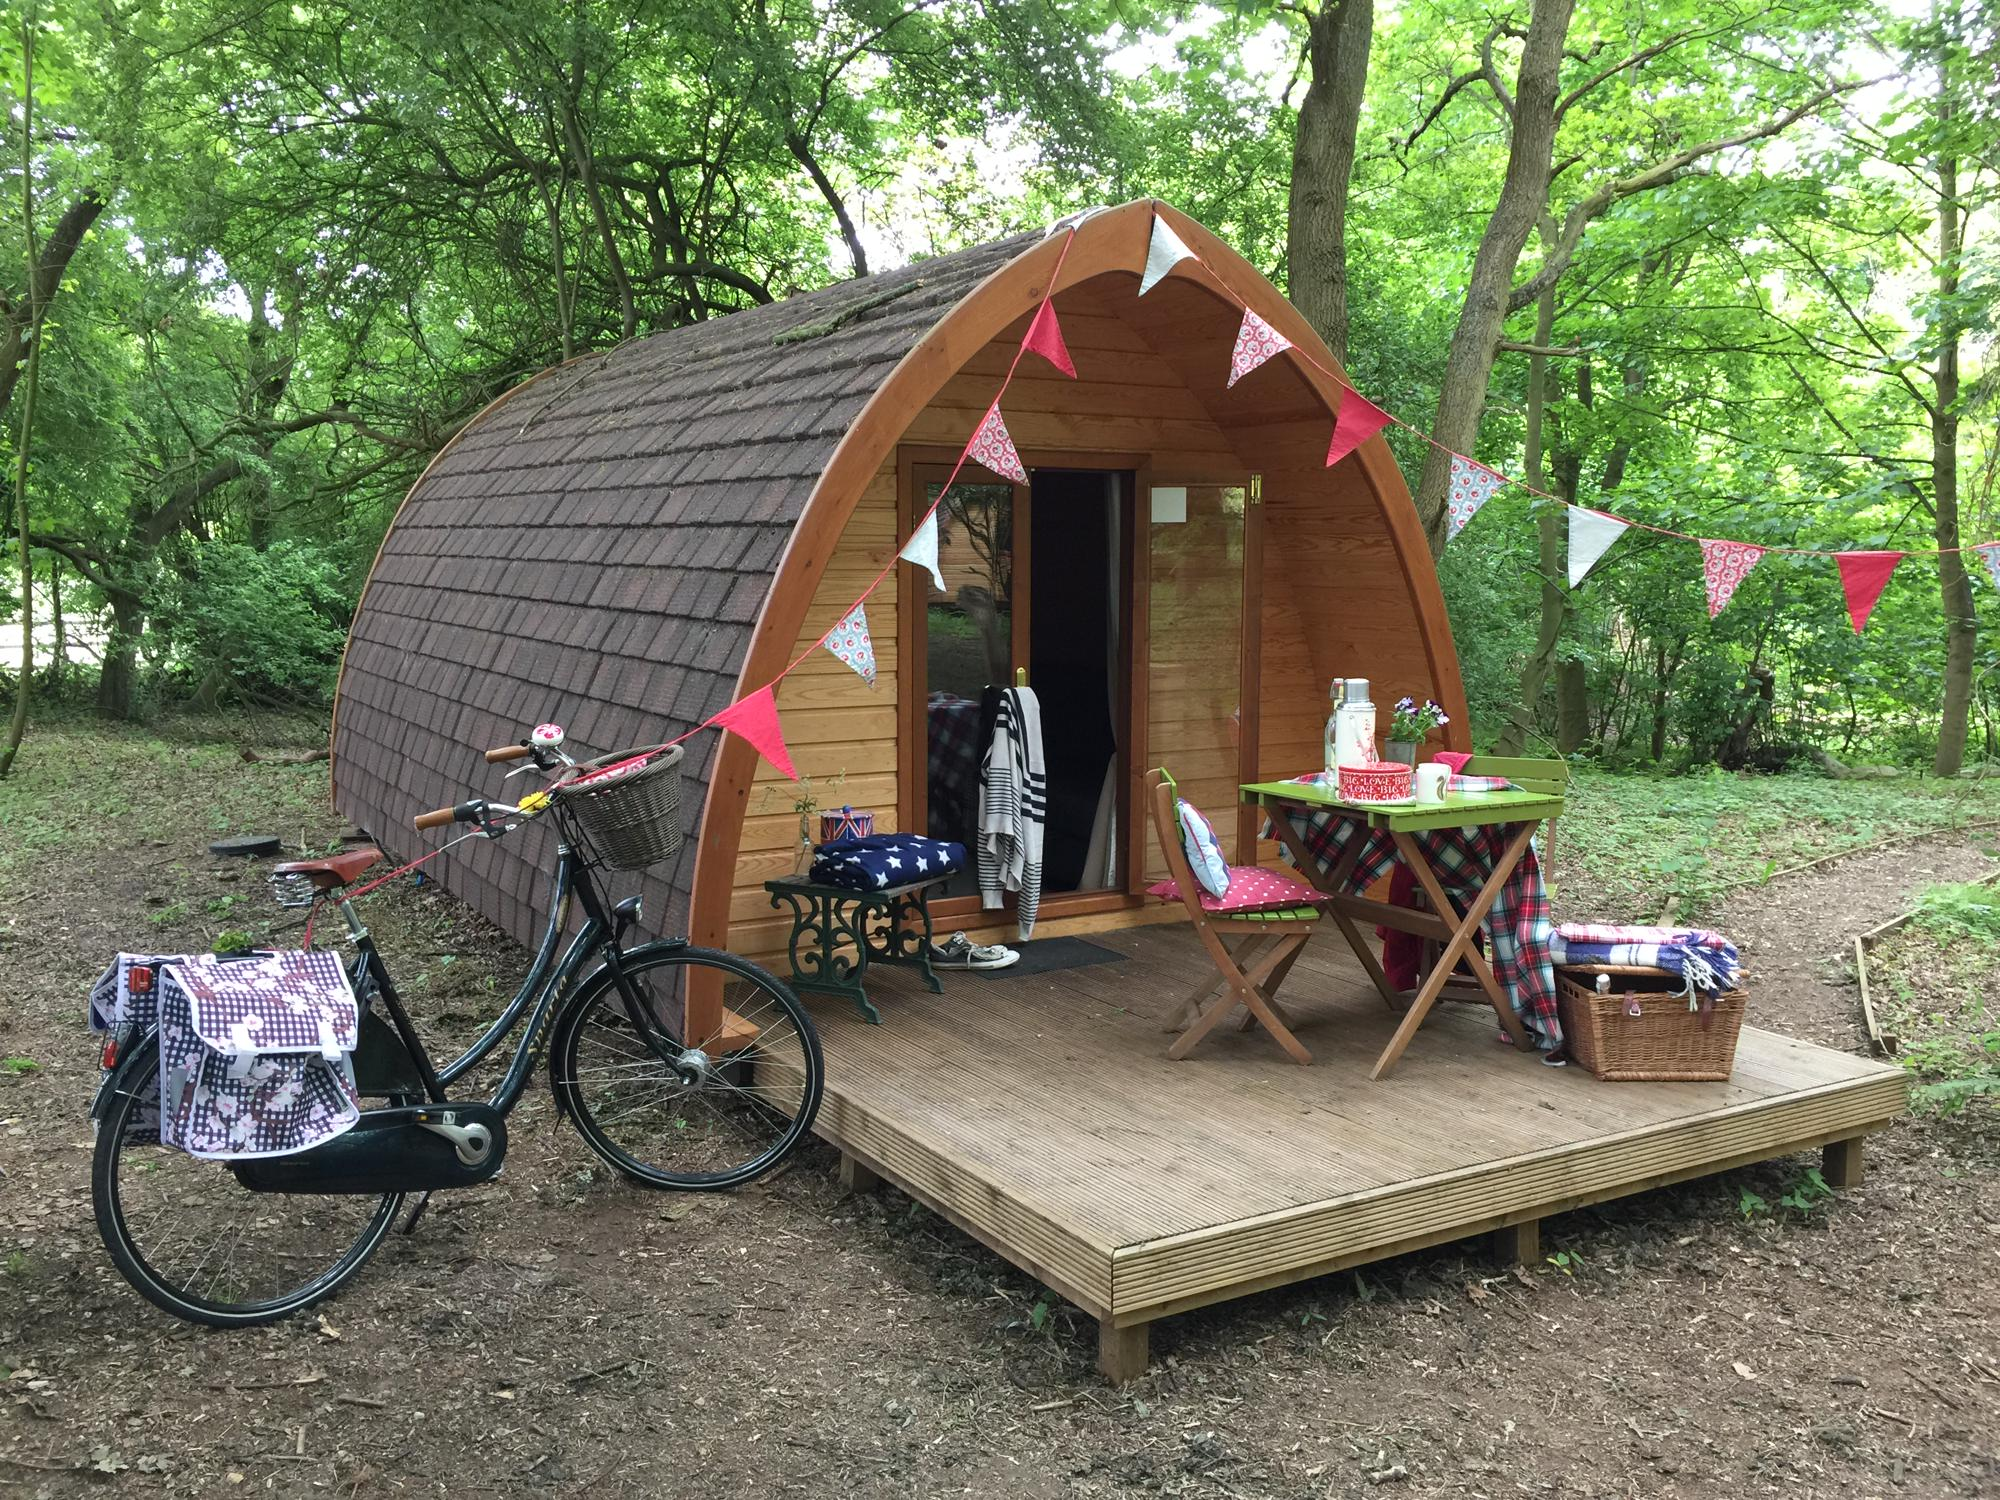 Glamping in Bury St. Edmunds – Cool Camping